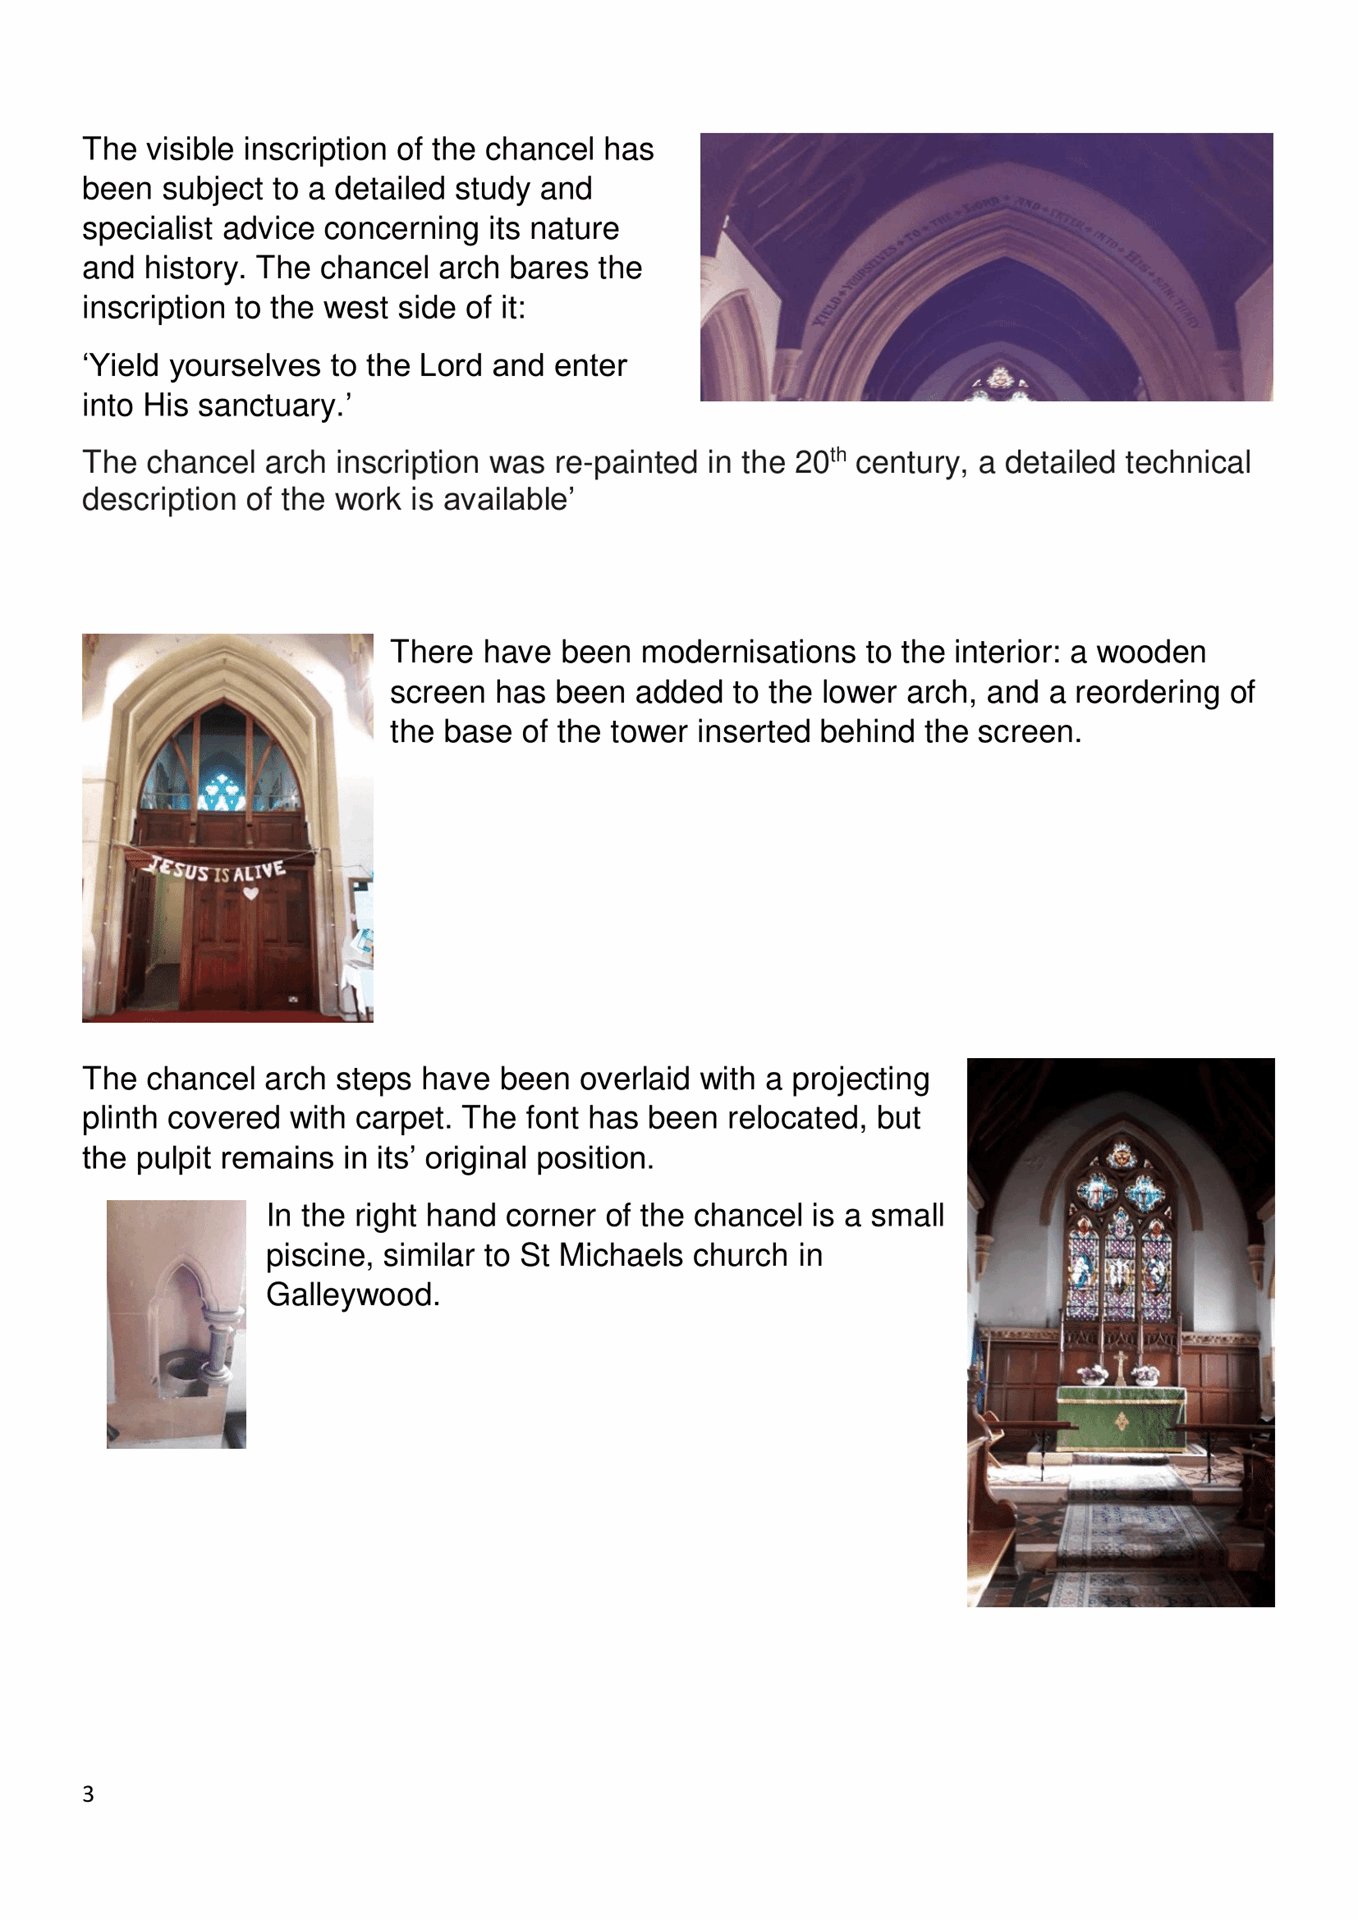 St. Marys Information 3